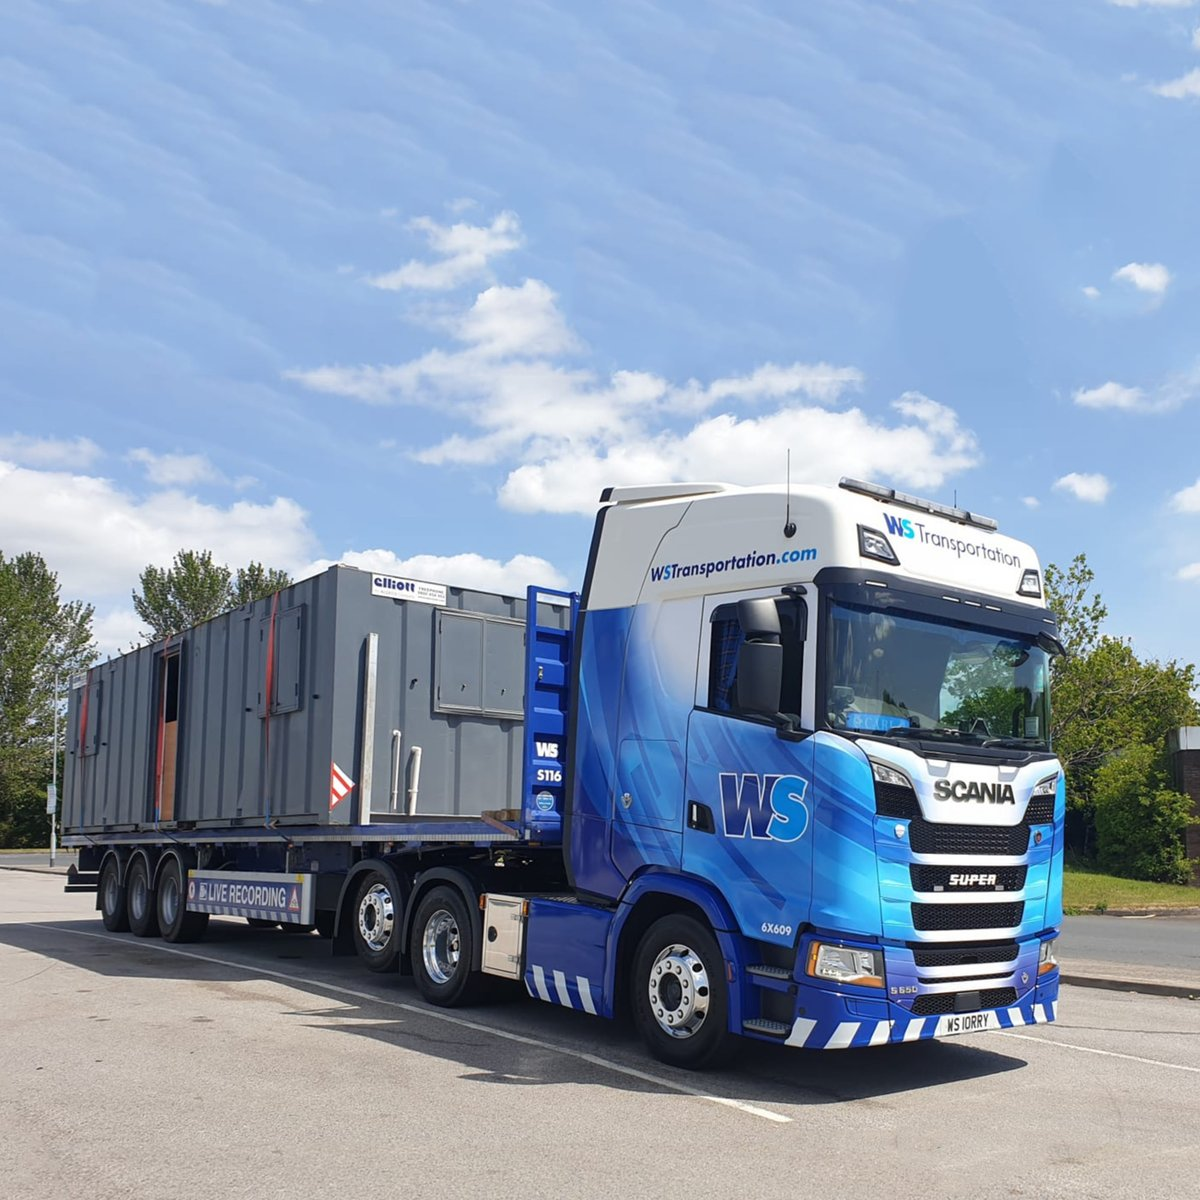 One of our trucks on route to delivery, looking great in the May sunshine.  #wstransportation #drivenbyperfection #truckwash #standards #complacencyruinsperfection #transport #logistics #transportation #haulagepic.twitter.com/zE38lVWewY